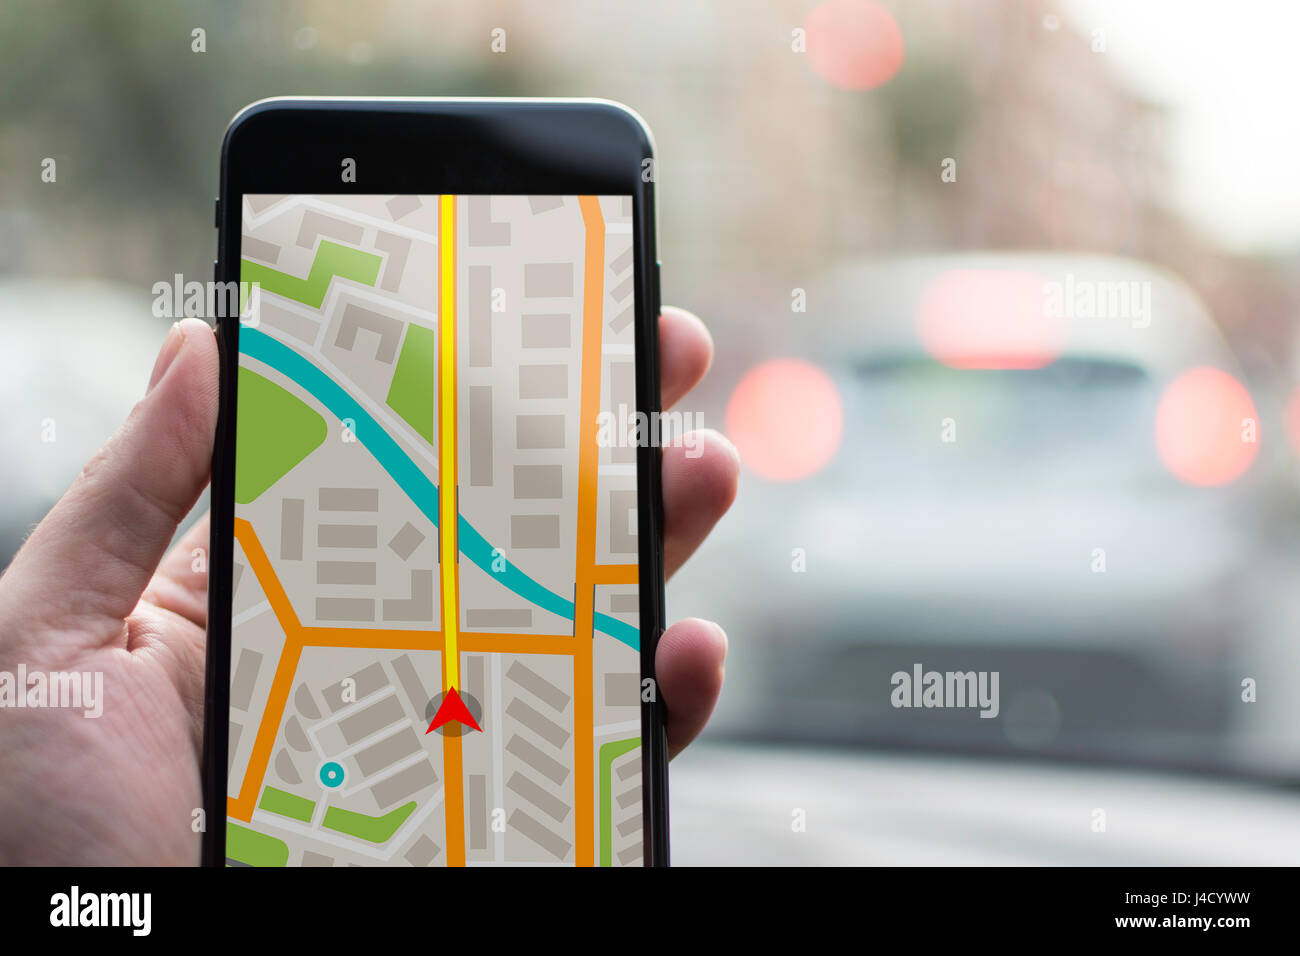 GPS Navigation on Mobile Phone Device and Transportation Concept. Male Hand Using Navigation System Map Tracking - Stock Image